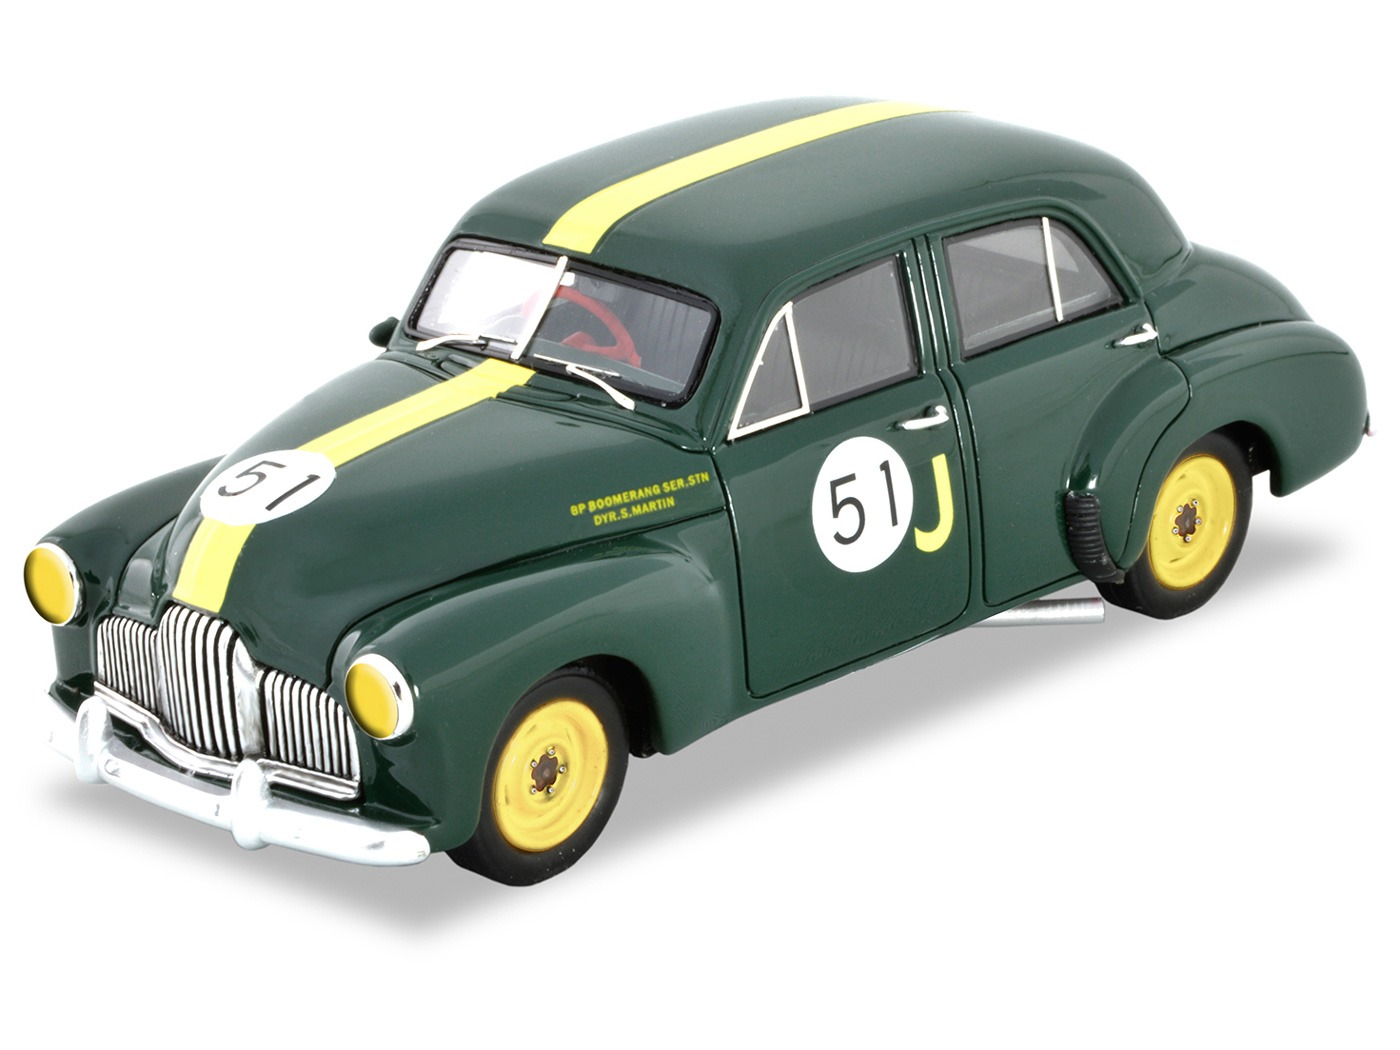 48/215 FX – British Racing Green – Spencer Martin, 51J